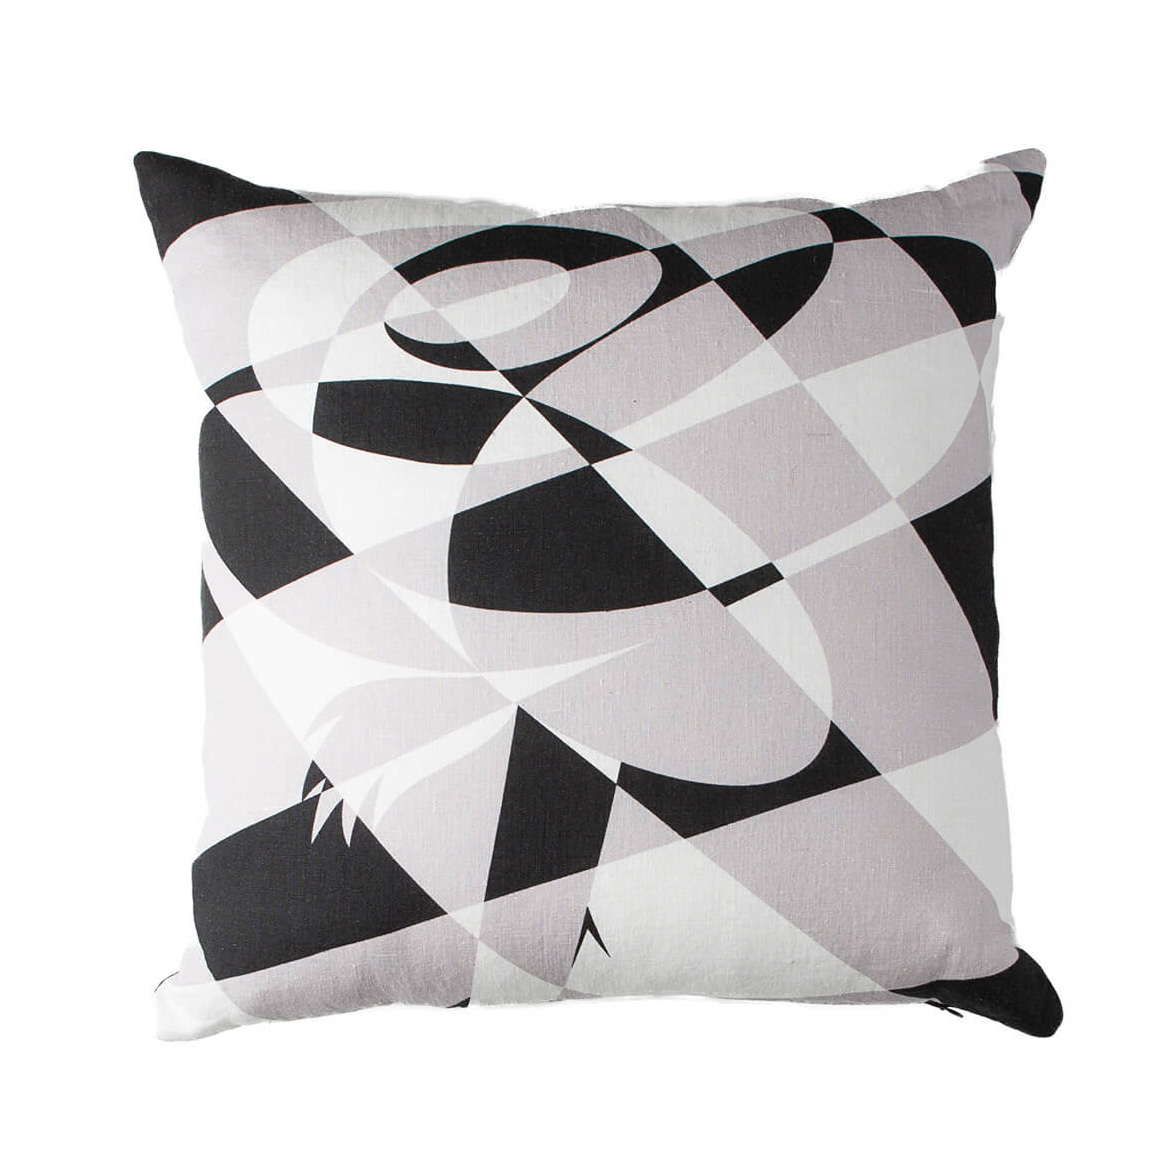 North Star White Lumberjack Rose Throw Pillow